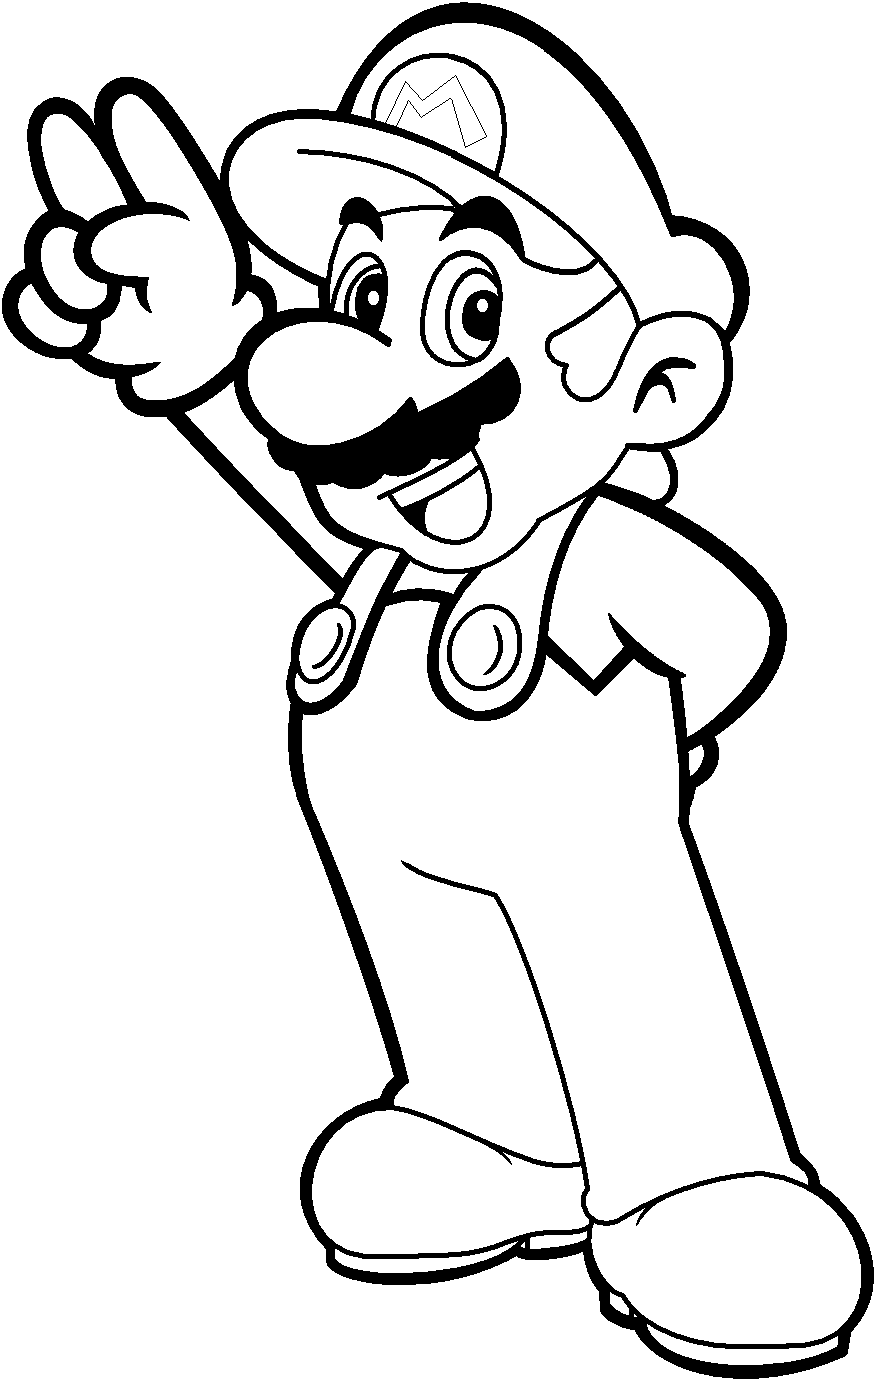 coloring sheet mario coloring pages coloring pages mario coloring pages free and printable pages coloring mario coloring sheet